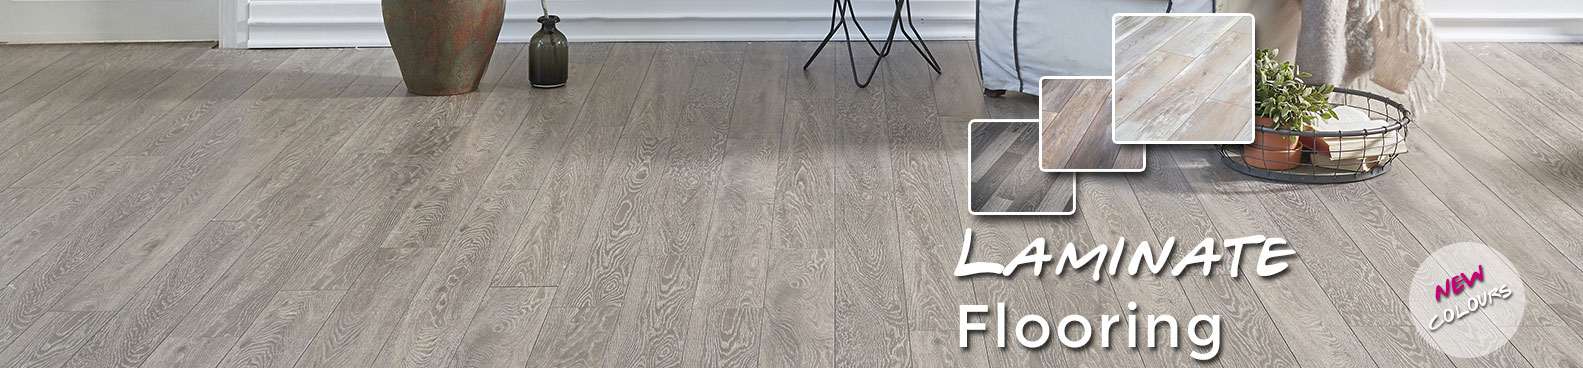 Quick Step Largest Laminate Flooring Range Online